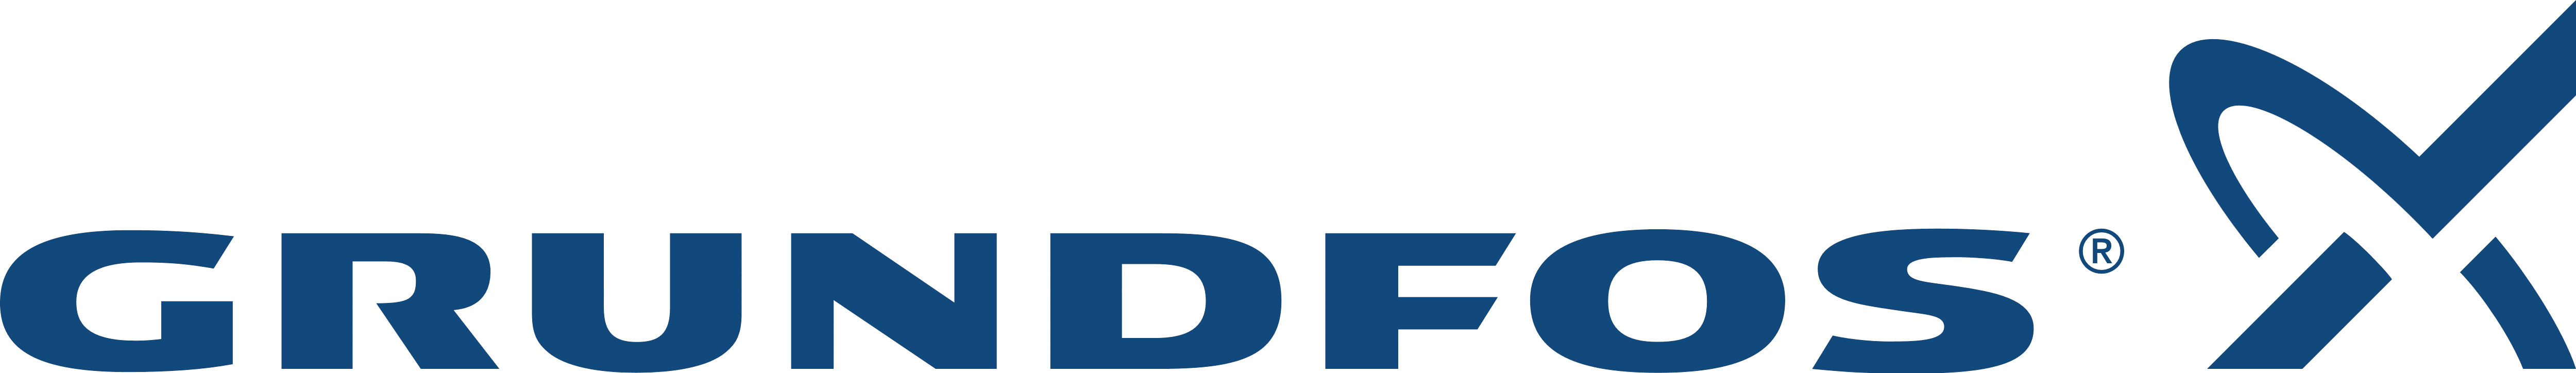 Grundfos – Logos Download